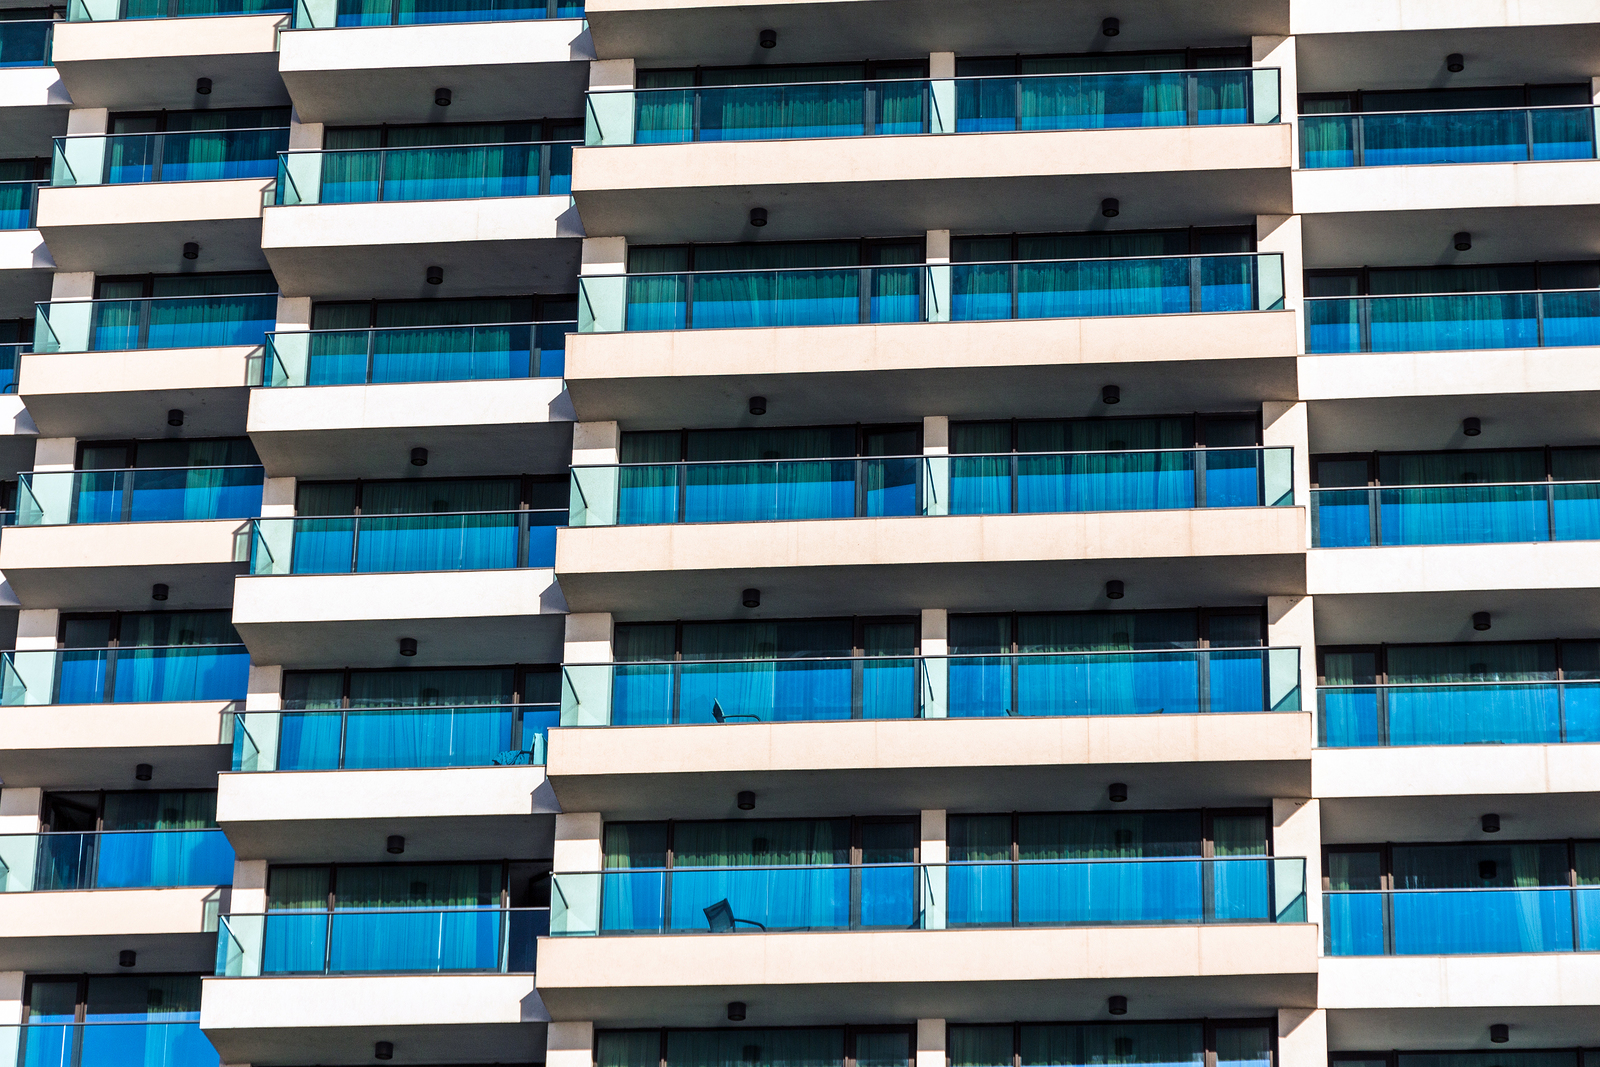 high rise hotel with balconies